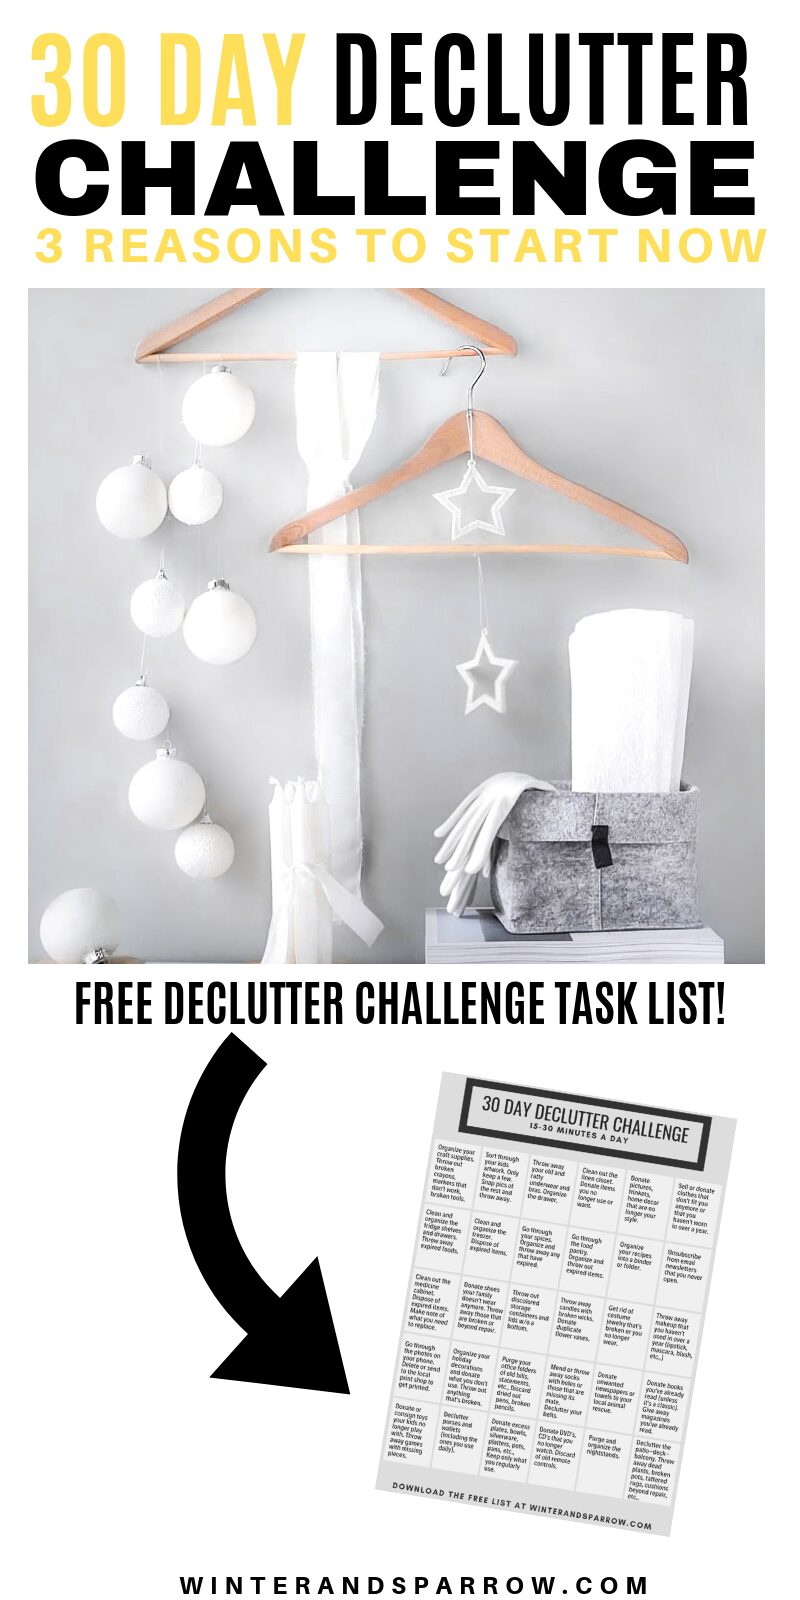 30-Day Declutter Challenge: 3 Reasons To Start Now | winterandsparrow.com #declutterchallenge #declutterchecklist #getorganized